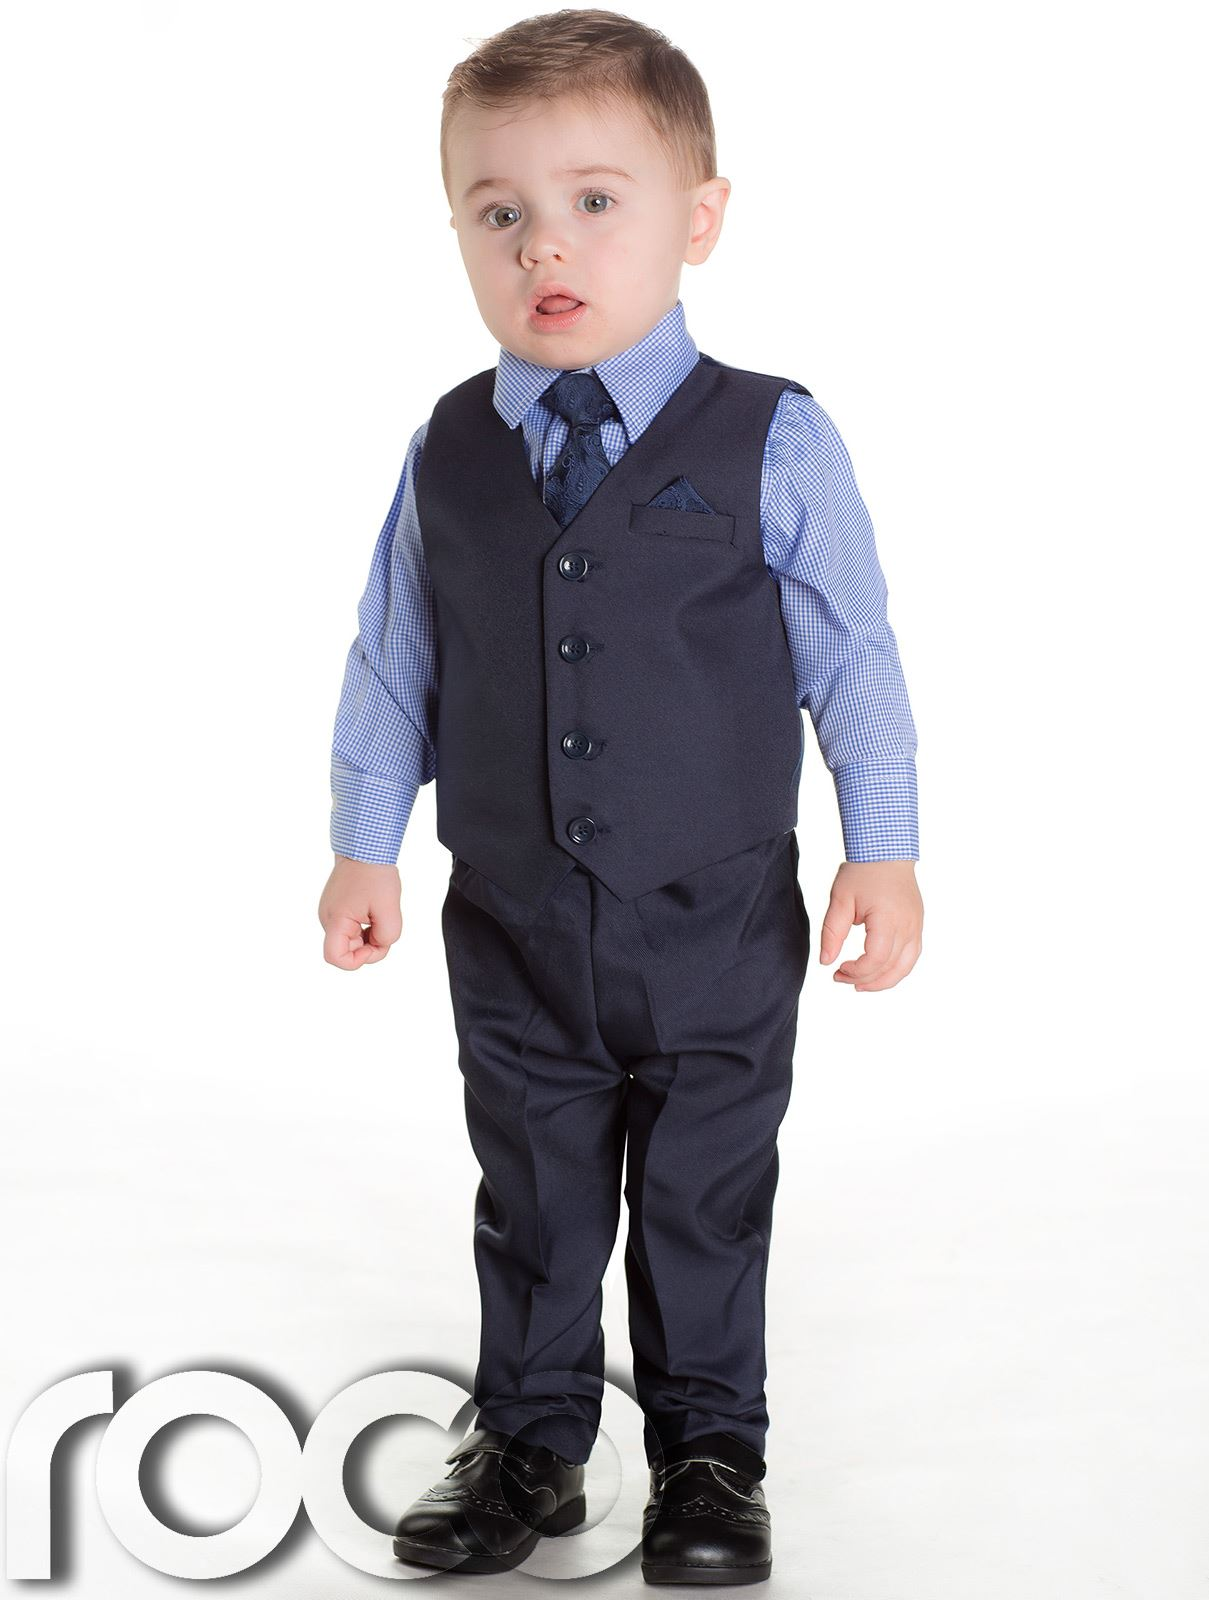 Shop our handsome boys formal clothes and get a beautiful deal. Whether he needs a boys christening outfit, a tuxedo for a wedding or a boys suit for church, xajk8note.ml is sure to have the perfect formal wear for your little boy.